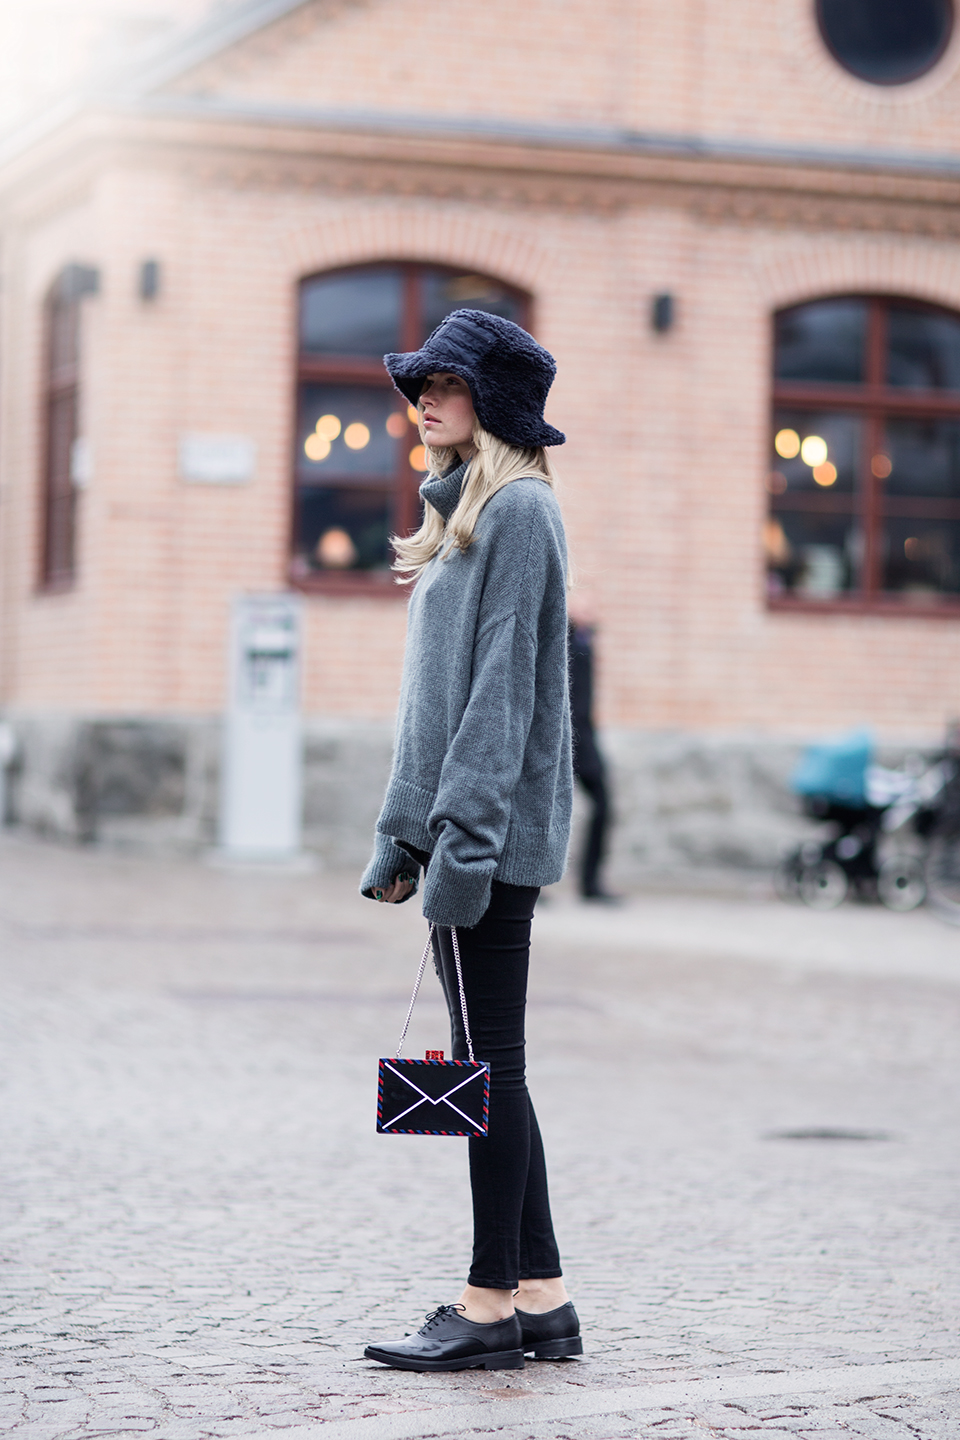 Extra long sleeves look extra cute on cashmere sweaters, like this one worn by Elsa Ekman. Copy this look and wear trendy patent brogues with skinny denim jeans and a furry bucket hat. Sweater: Hunkydory, Jeans: Cheap Monday, Shoes: Hudson, Bag: Karl Lagerfeld, Bucket Hat: River Island.